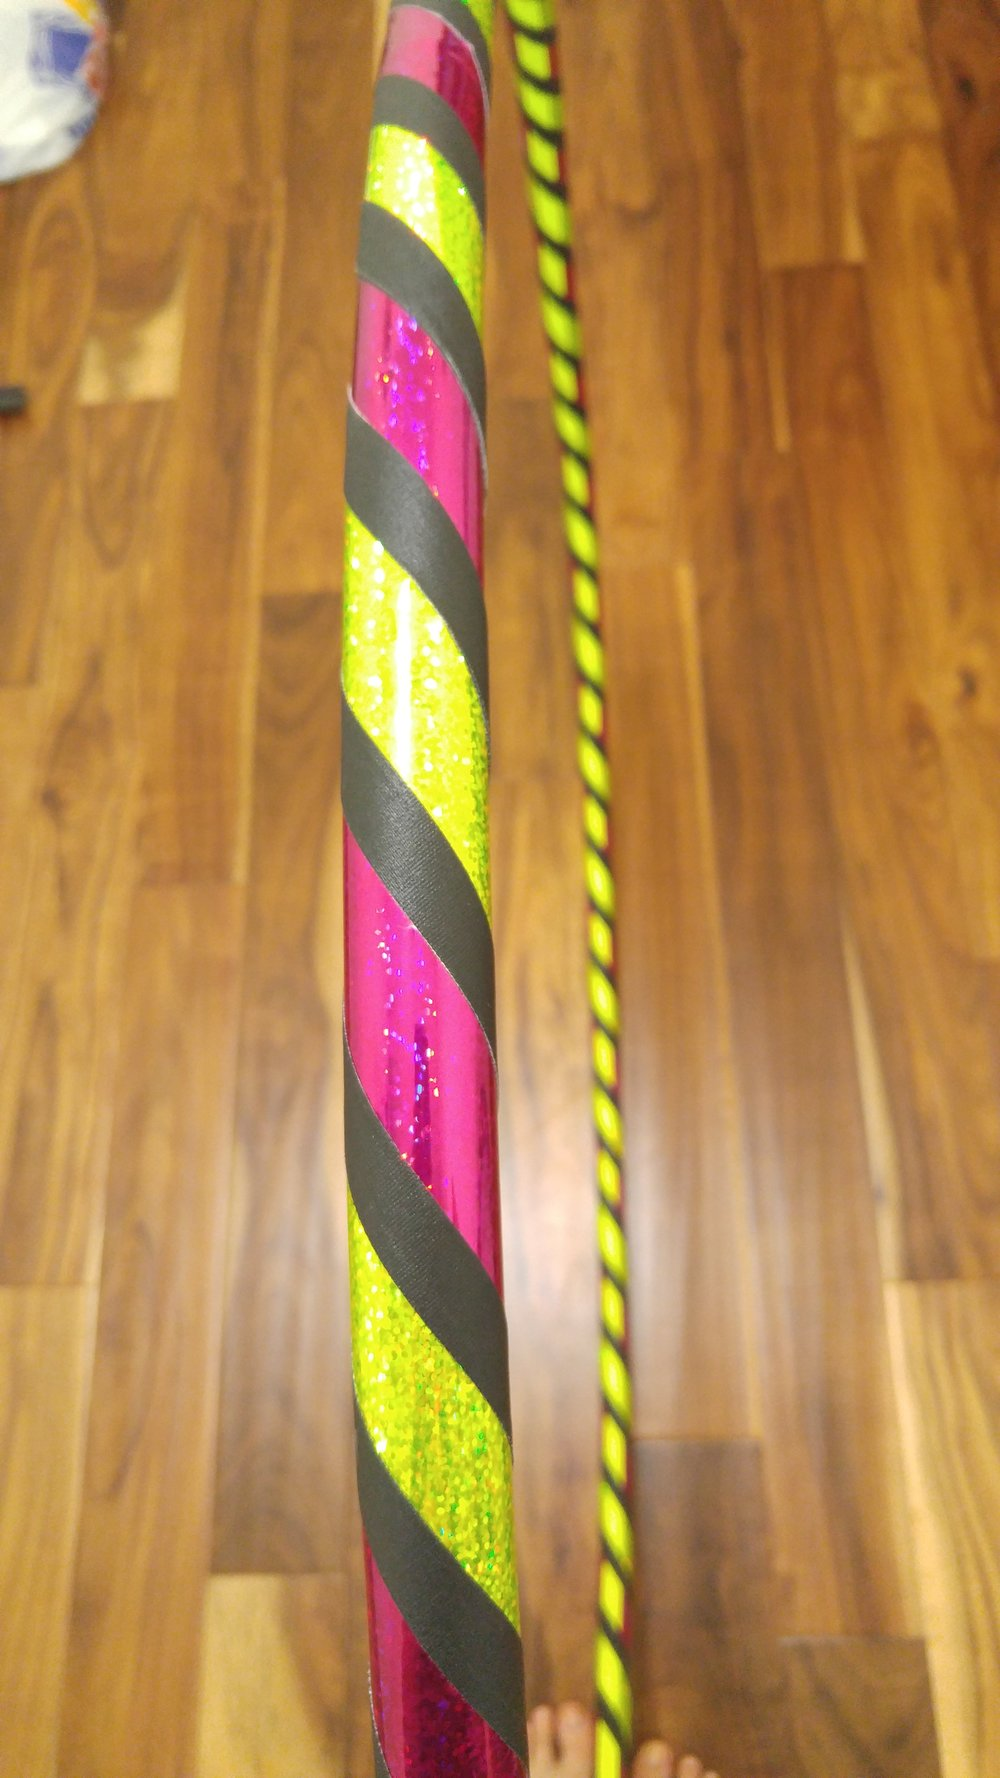 Yellow & Magenta Sparkle w/ Black grip